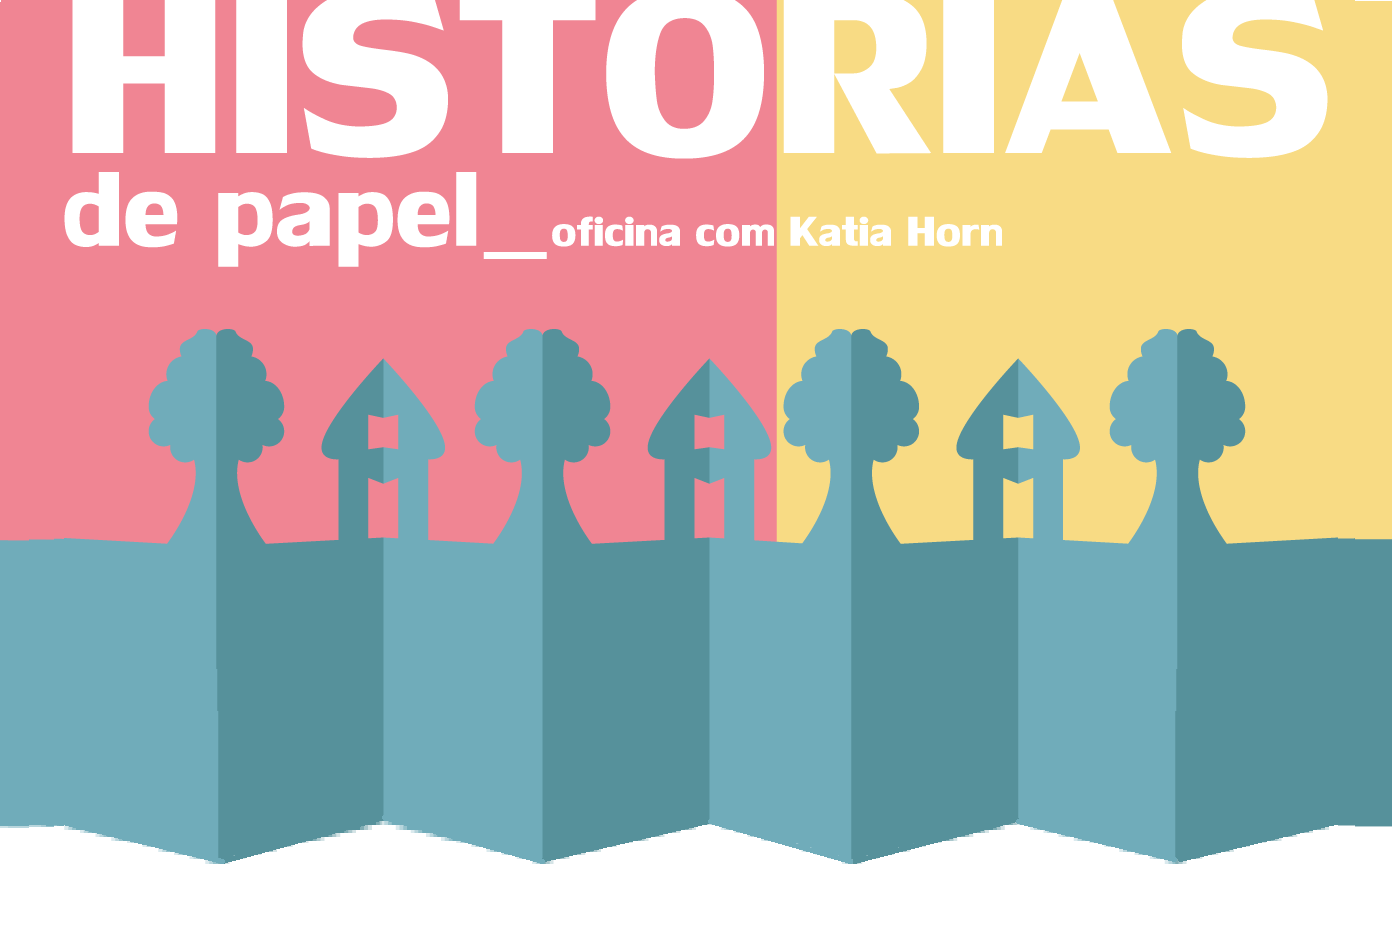 Hist rias de papel oficina na casa do contador de for Papel oficina